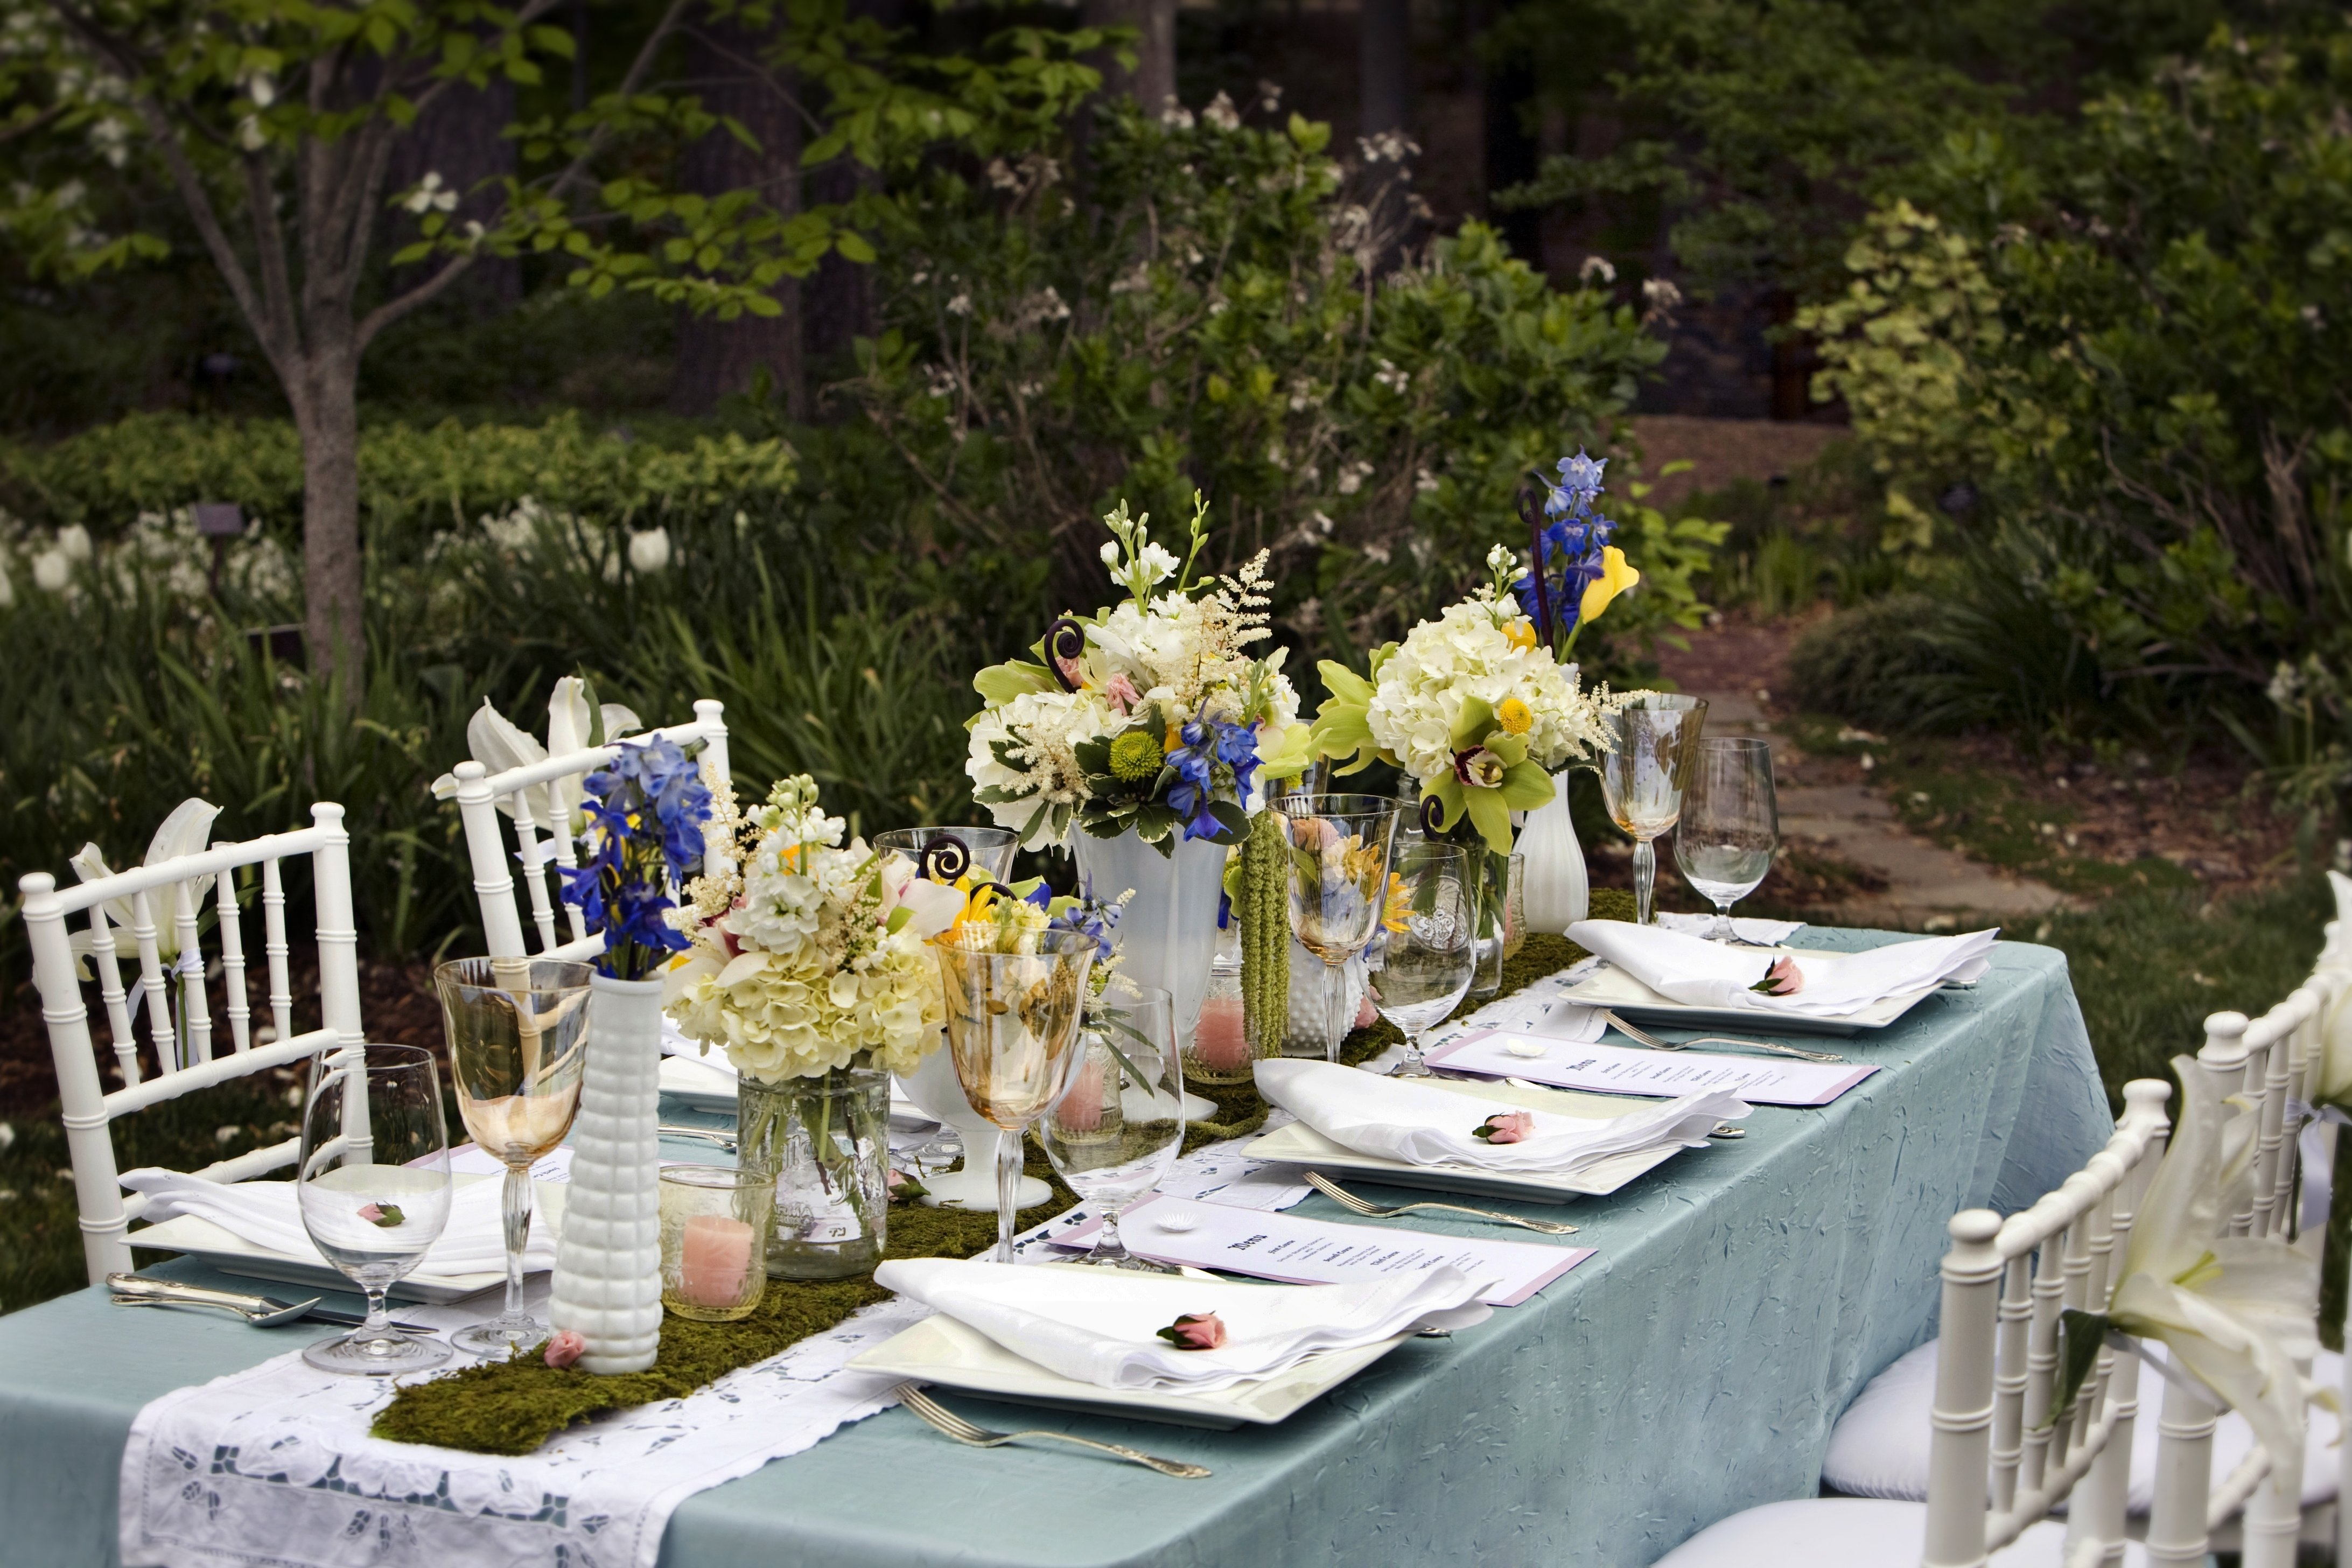 10 Attractive Ideas For A Small Wedding creative of small wedding ideas small wedding at home ideas all 2020